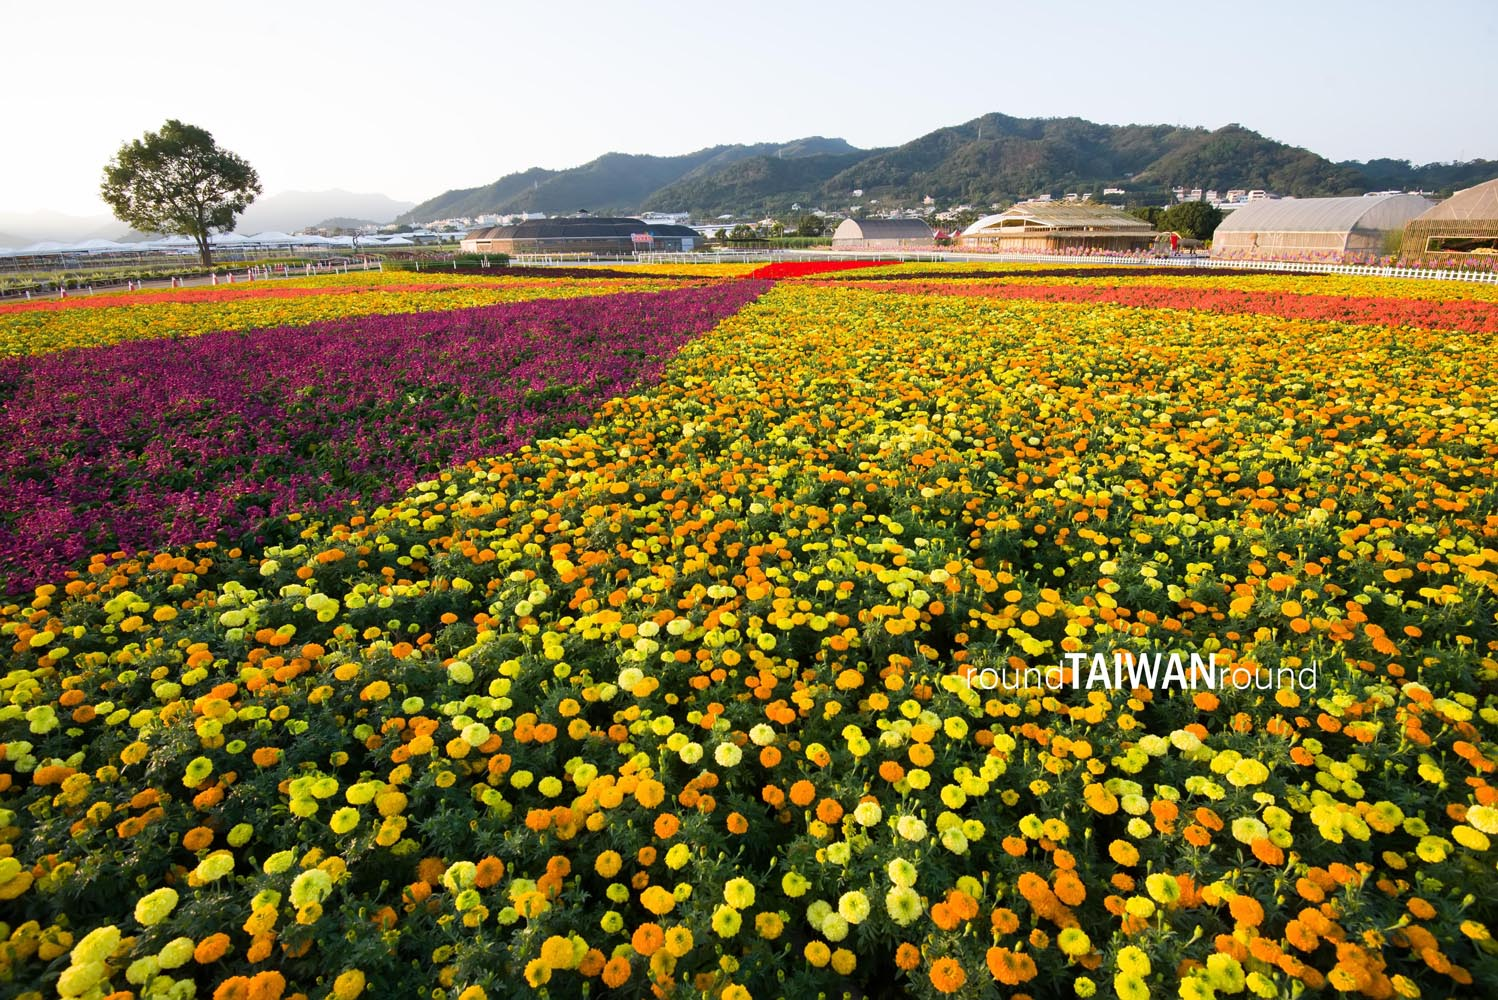 xinshe sea of flowers round taiwan round